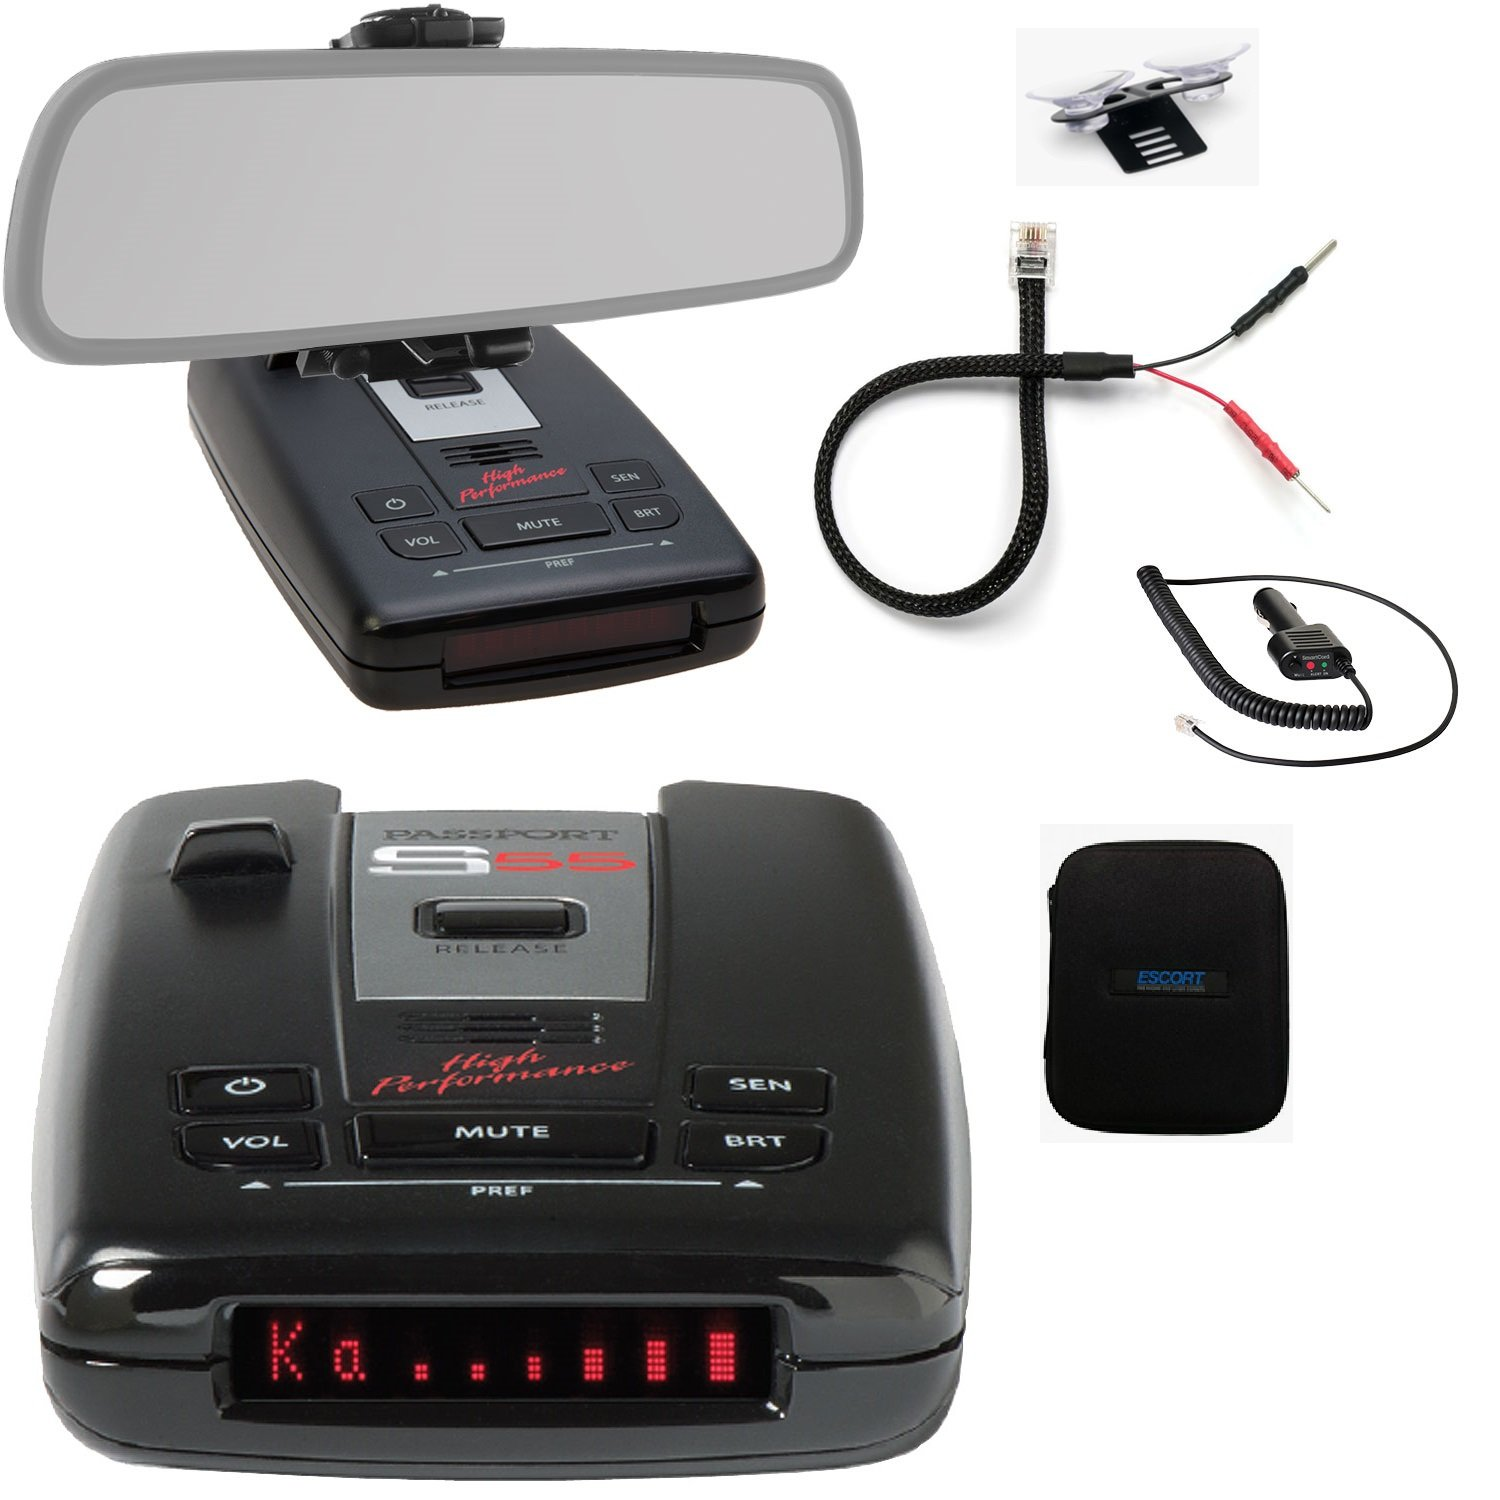 Cheap Escort 8500 X50 Radar Detector find Escort 8500 X50 Radar